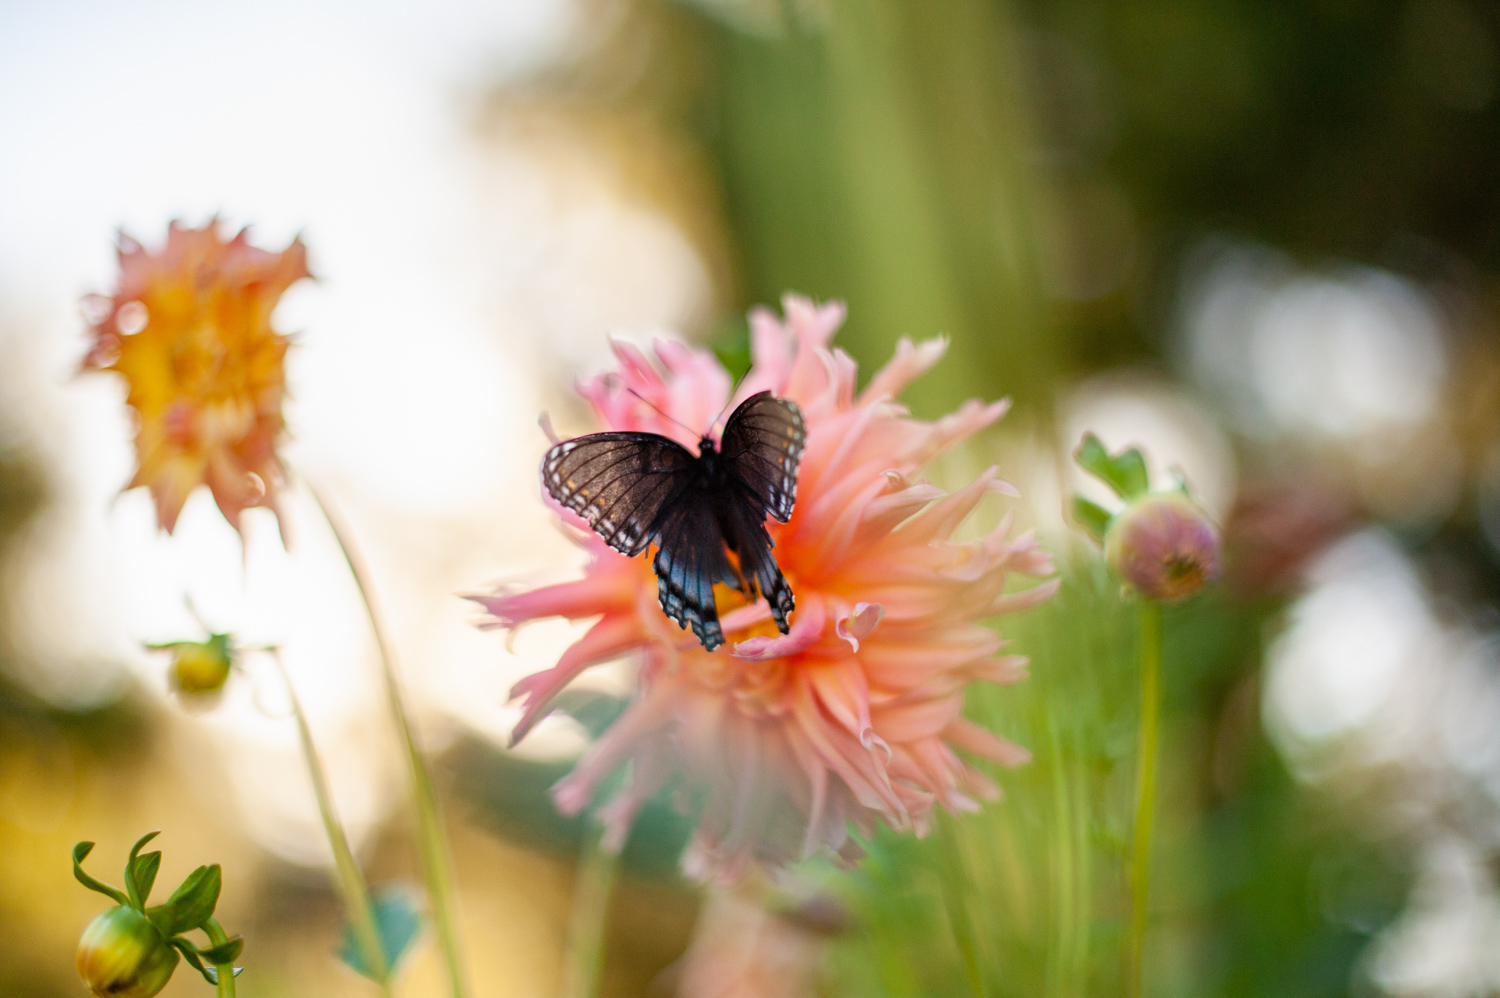 Color Photograph, Insect, Flower, Butterfly, Dahlia, Midwest, Interior Design, Wall Art